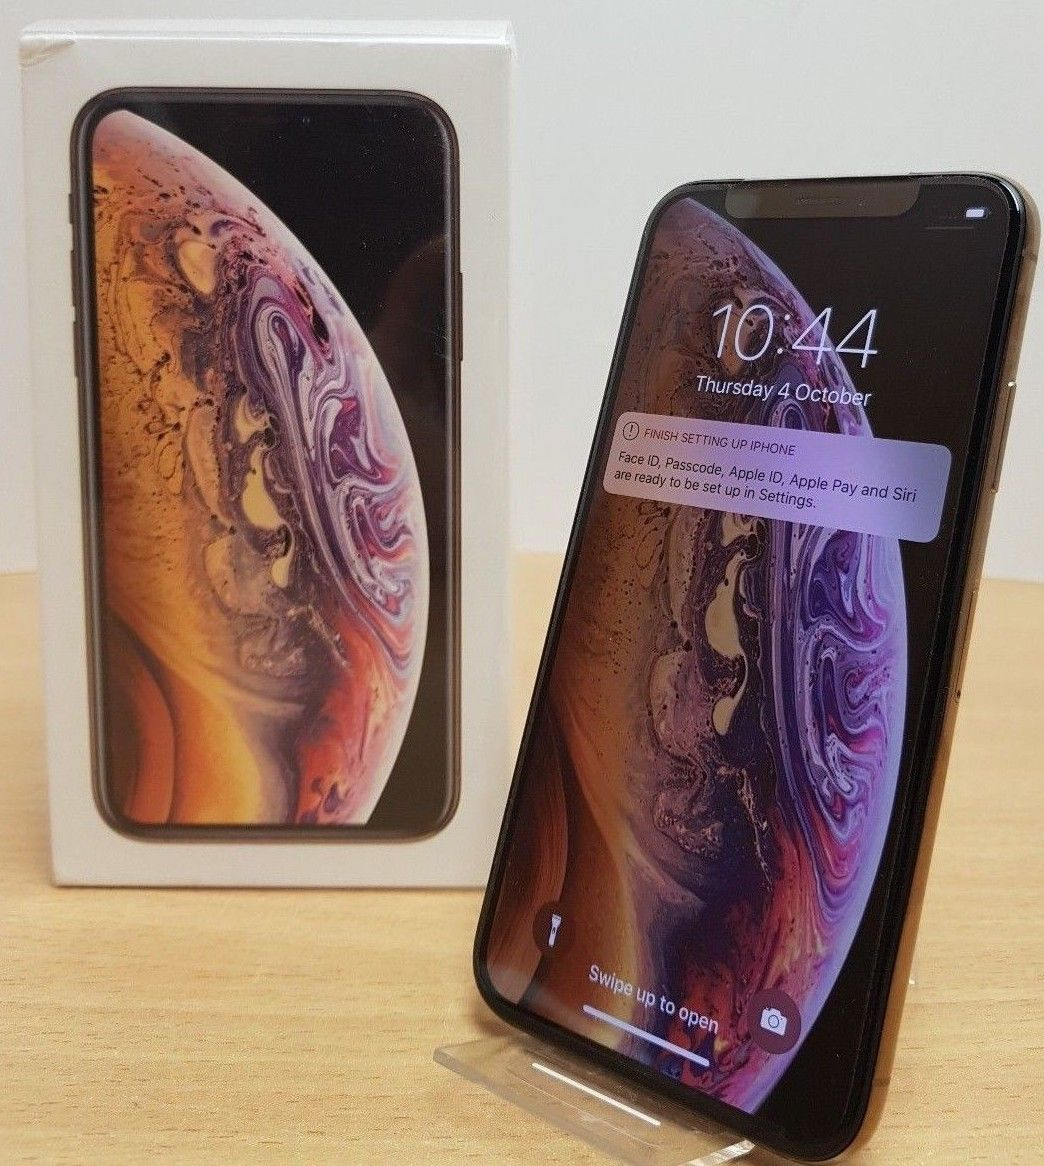 Apple iPhone Xs 64GB per 530 EUR  ,iPhone Xs Max 64GB per 580 EUR ,iPhone X 64GB = 350 EUR, Whatsapp Chat : +27837724253